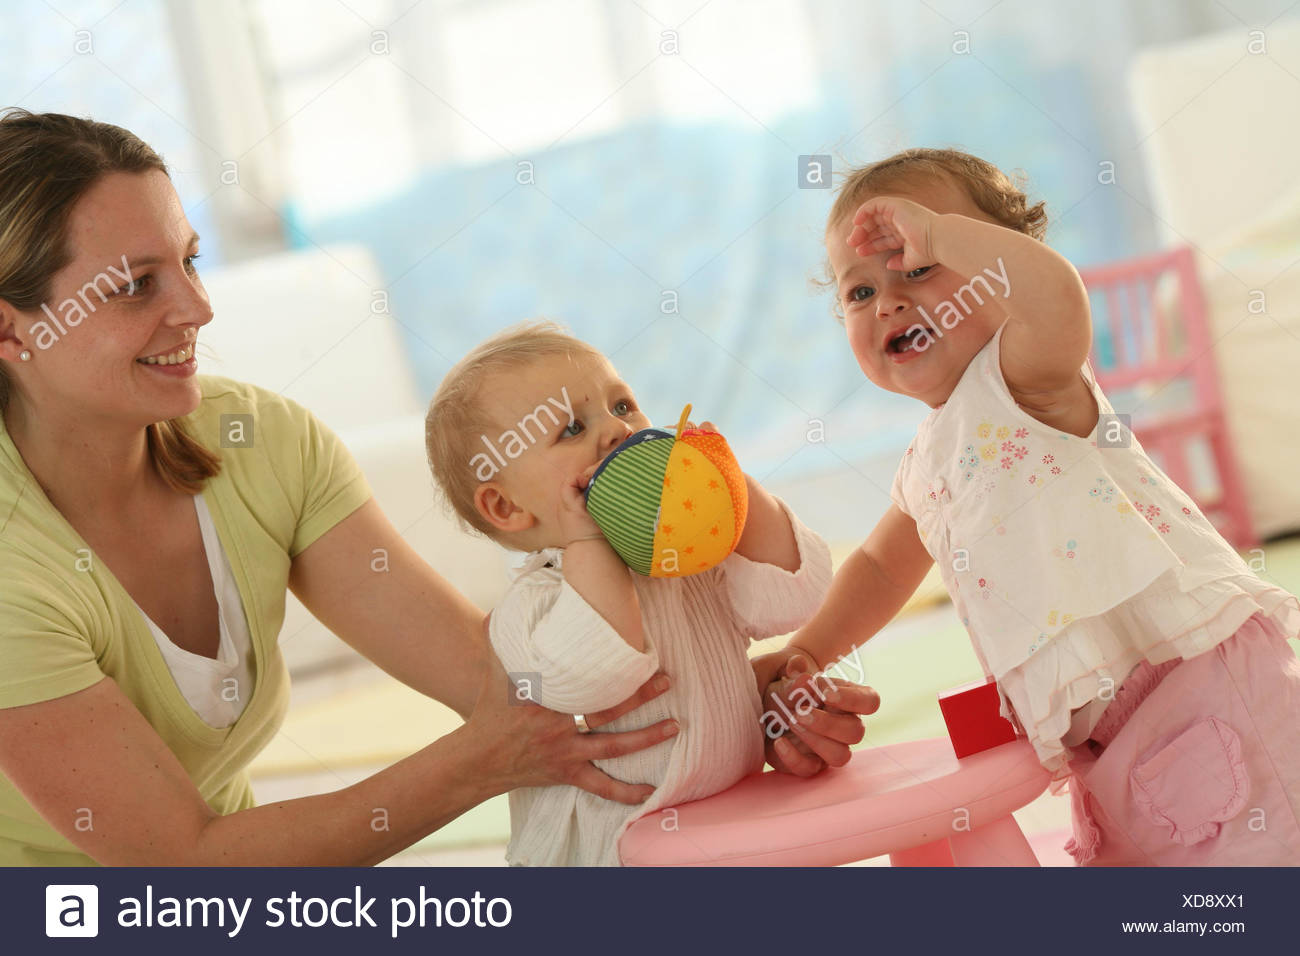 Babies, 9 months, mother, ball, play, get up, ball, dressed, blond, jealousy, discoveries, friends, reach, group, Indoor, boy, facial play, girl, play, toys, stand, fight, weep, baby, person, woman, - Stock Image